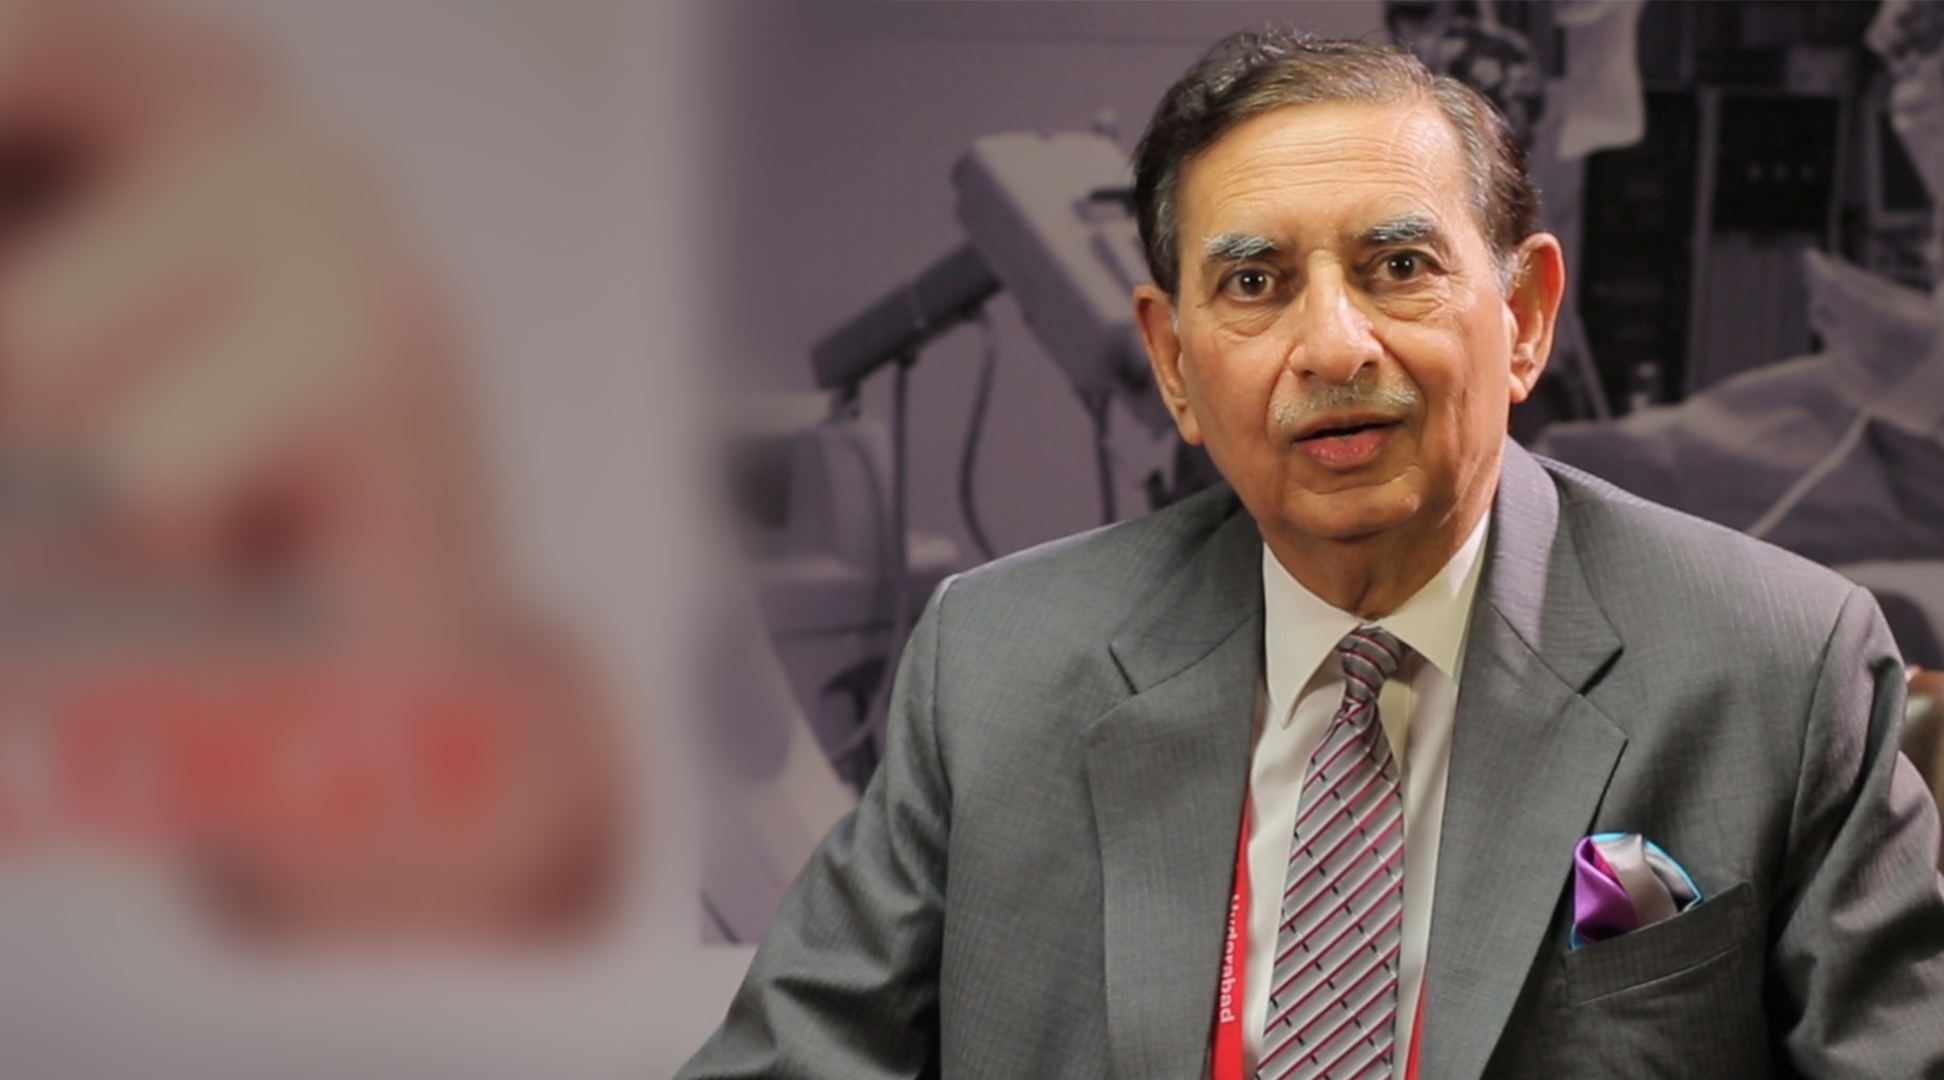 Dr. K K Sethi Leading Cardiologist Chairman and Managing Director of Cardiology at Delhi Heart and Lung institute New Delhi on TheRightDoctors.Com An Overview on Revolutionary Therapy For Common Disorders Counterpoint